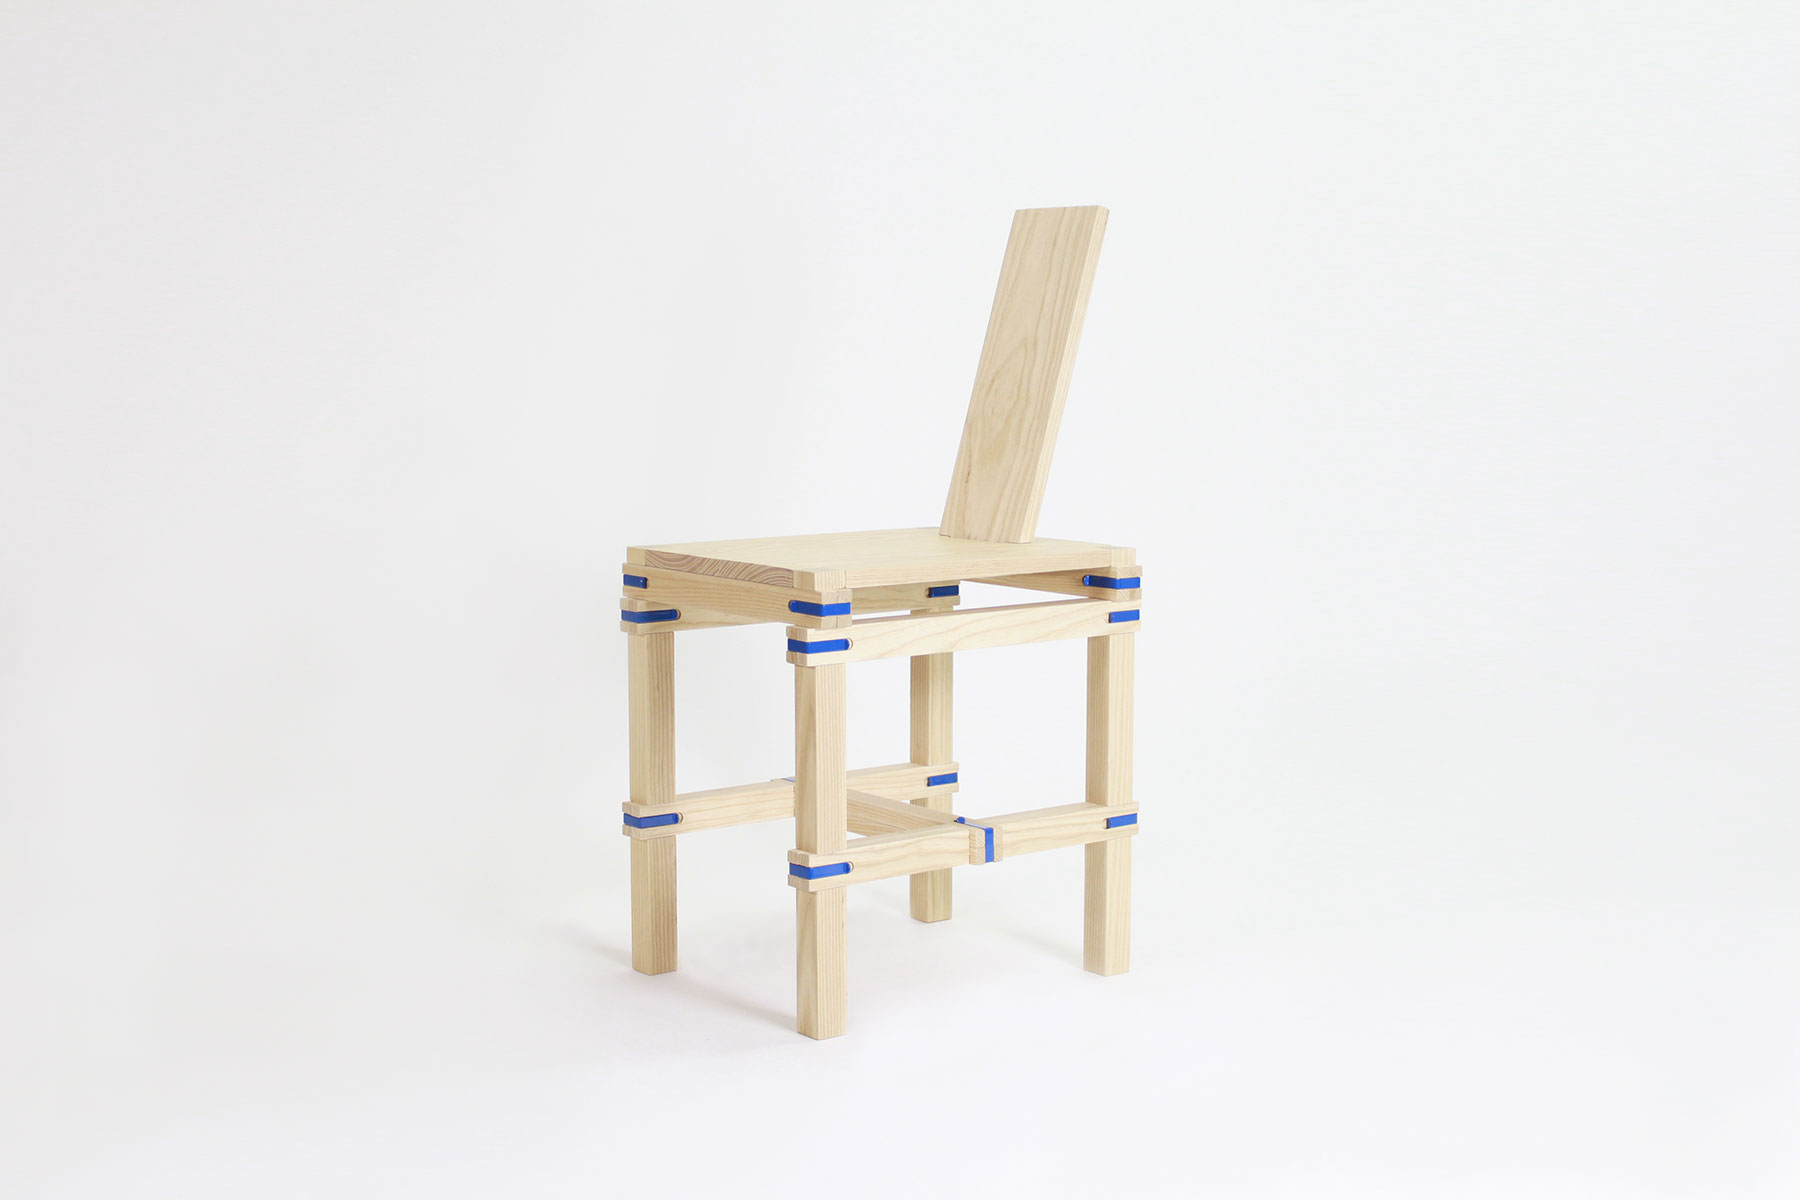 Jorge Penadés'  Nomadic Chair–a  versatile and flexible furniture piece,based on a detachable structure without screws, nails or glue.